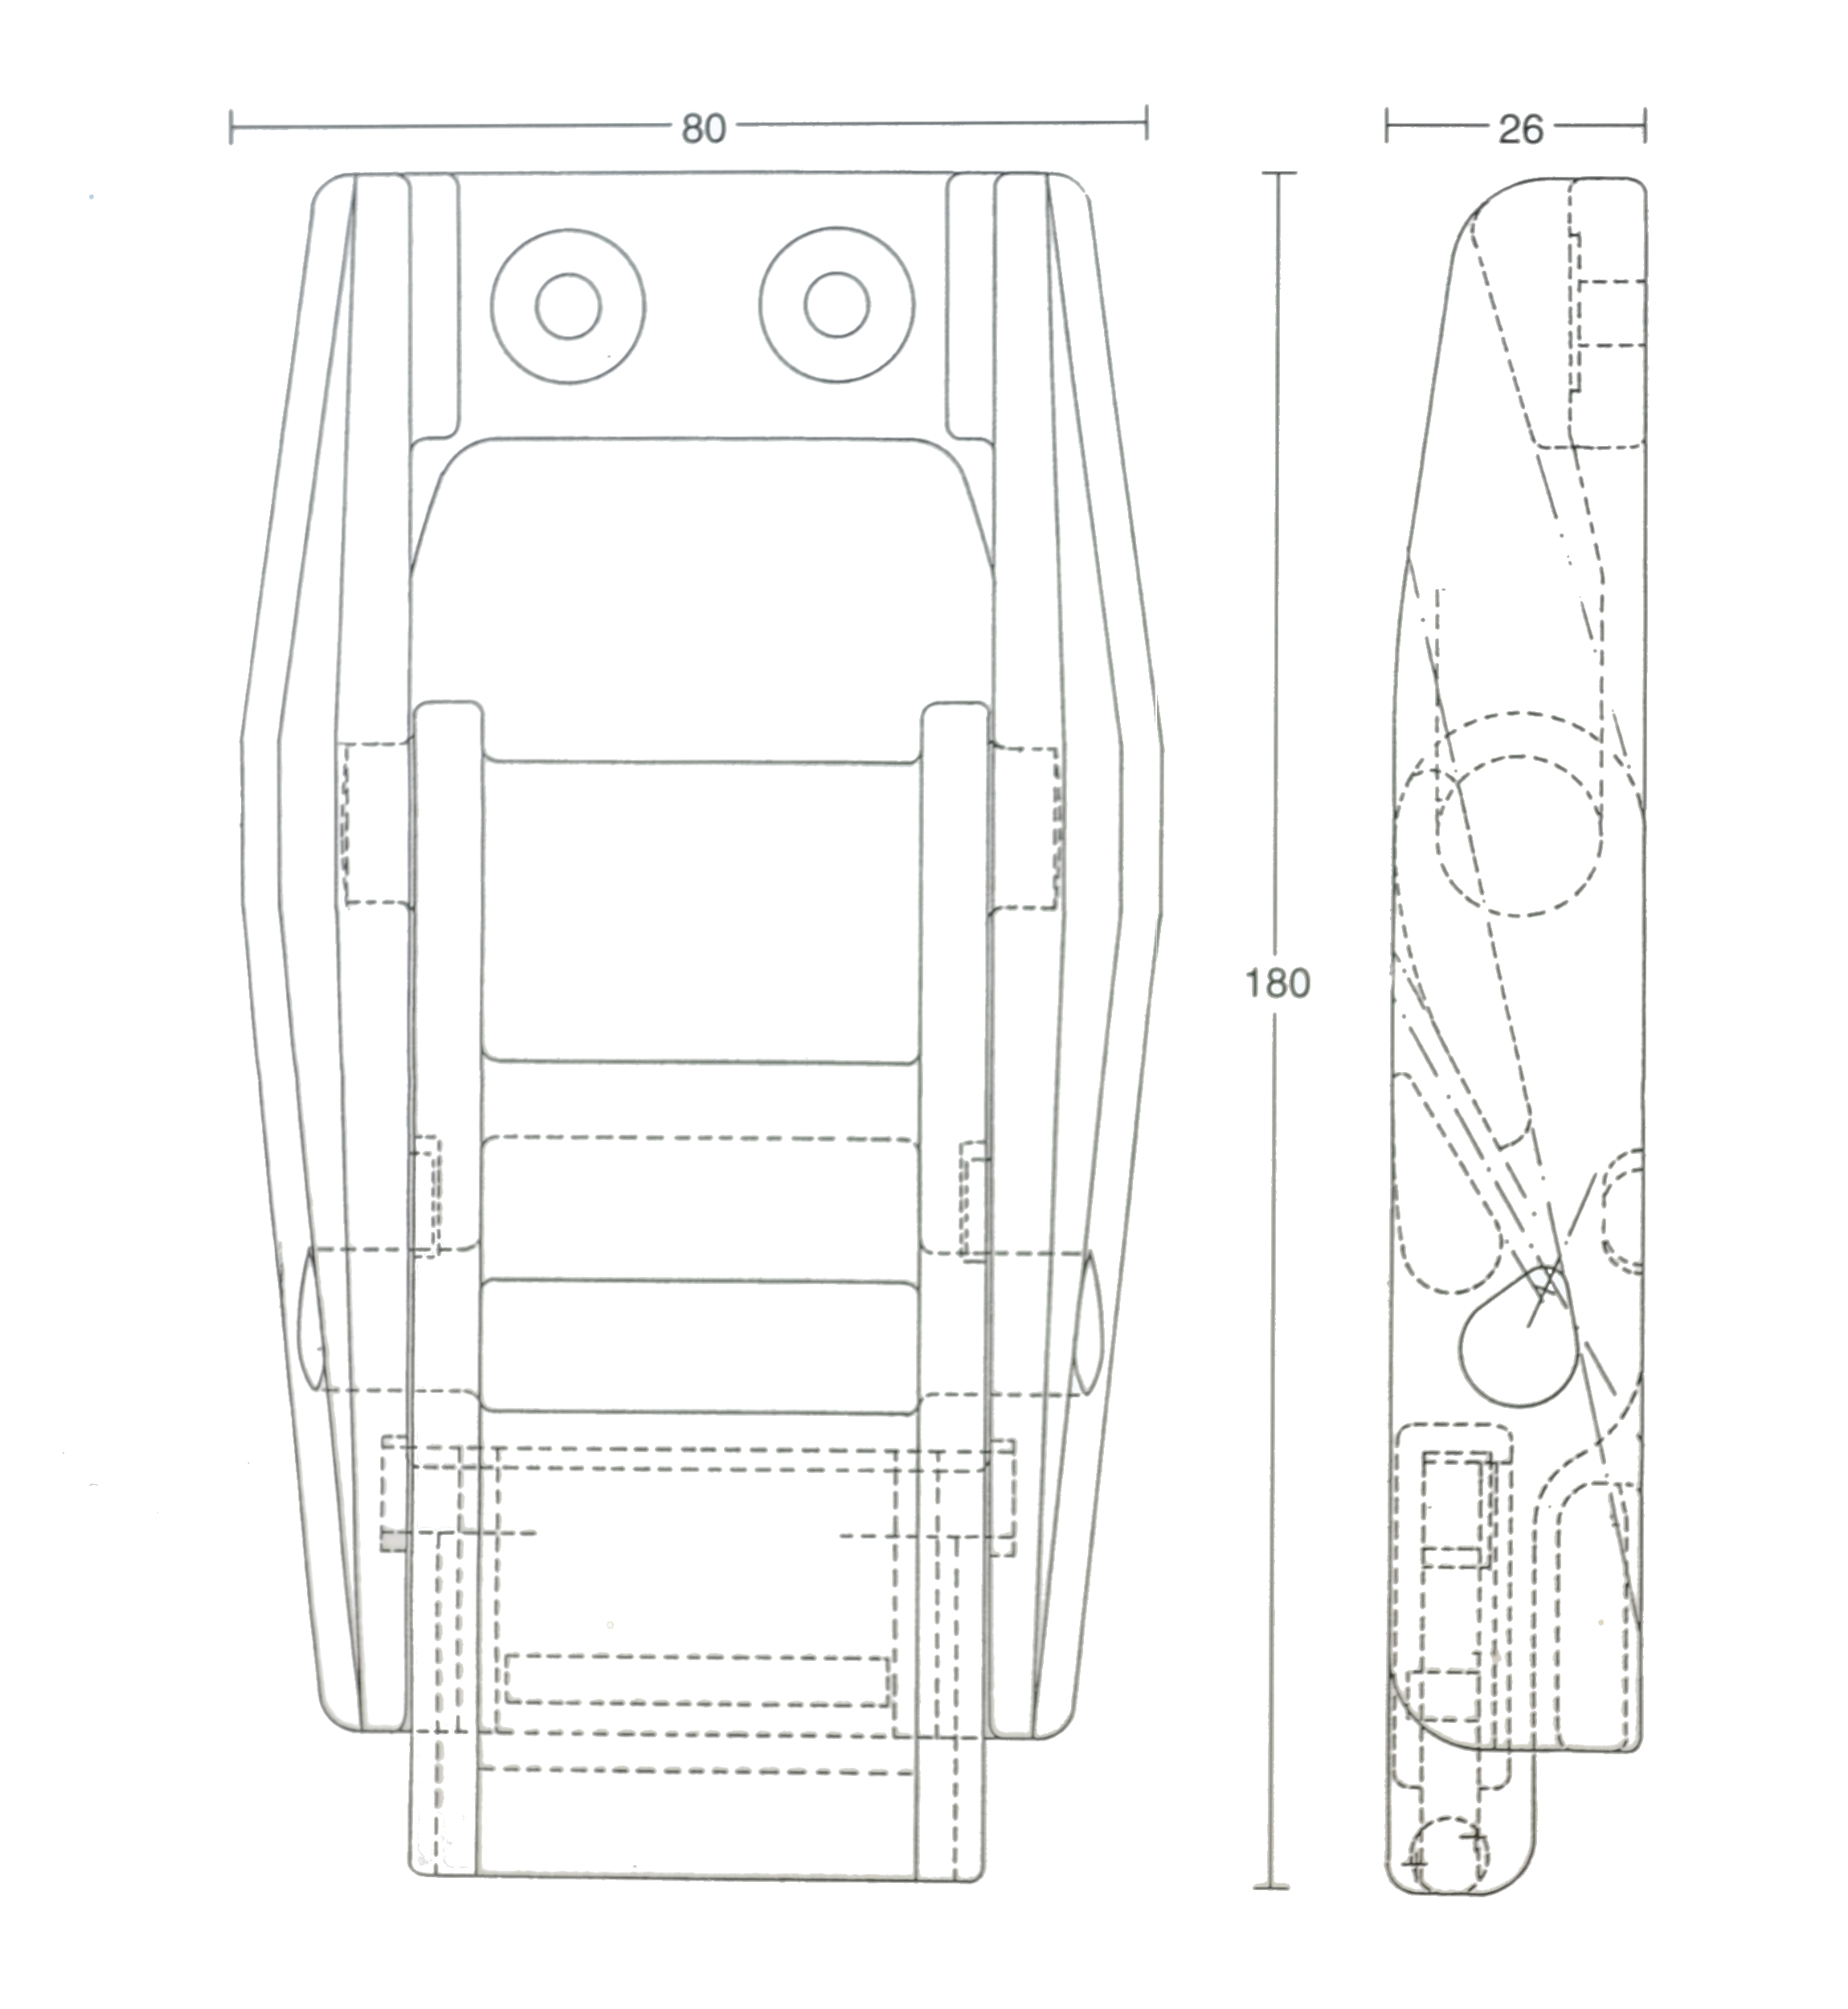 Image Eurobuckle Technical Drawing